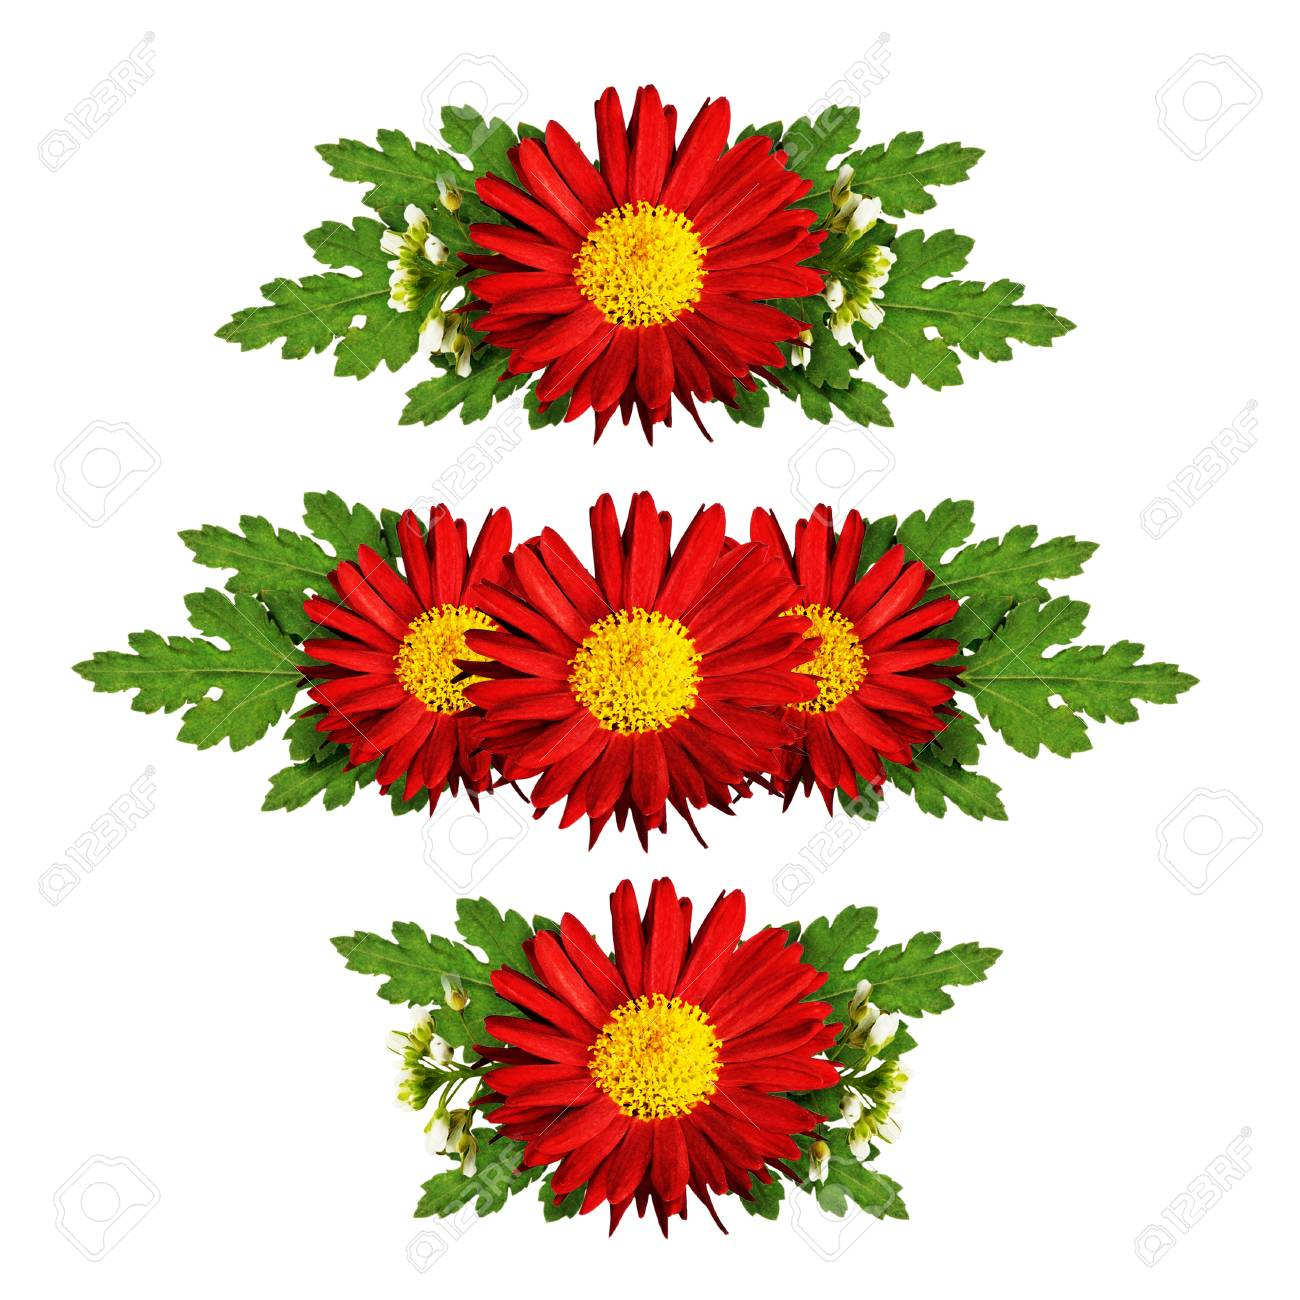 Red aster flowers compositions isolated on white stock photo red aster flowers compositions isolated on white stock photo 47587945 mightylinksfo